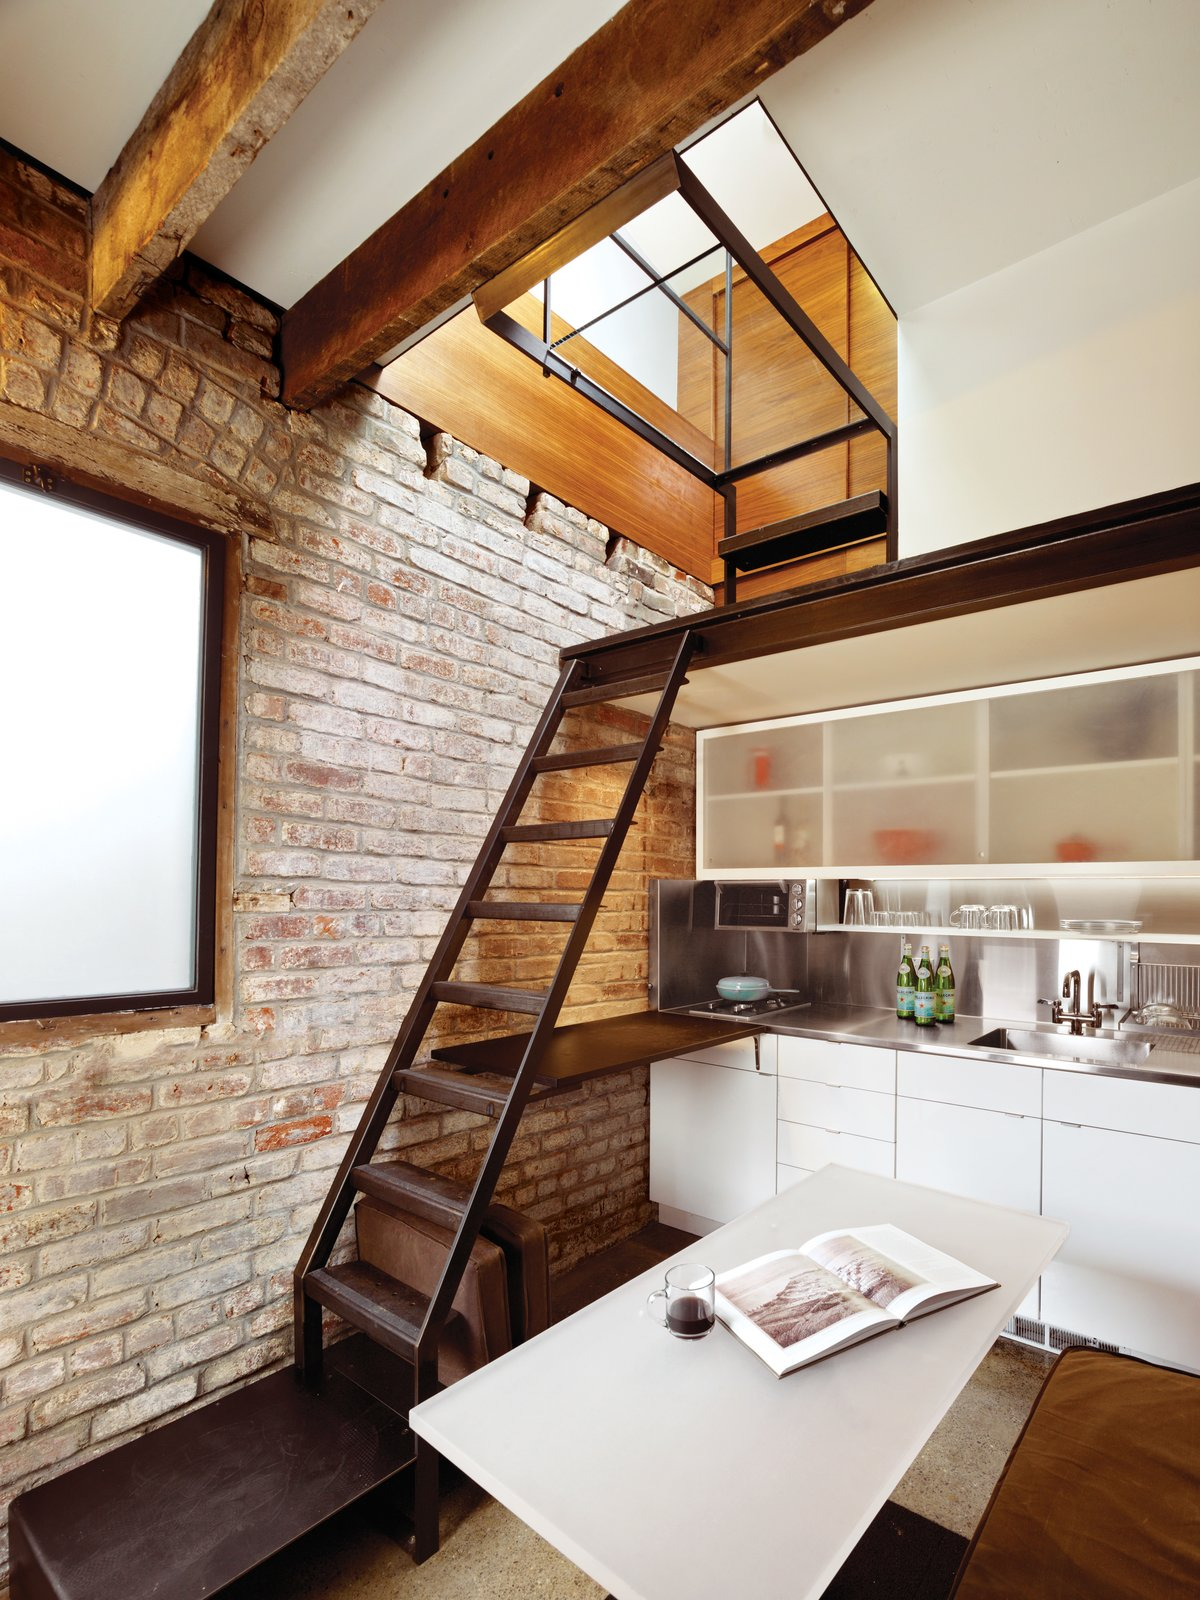 Articles about compact three story brick loft san francisco on Dwell.com